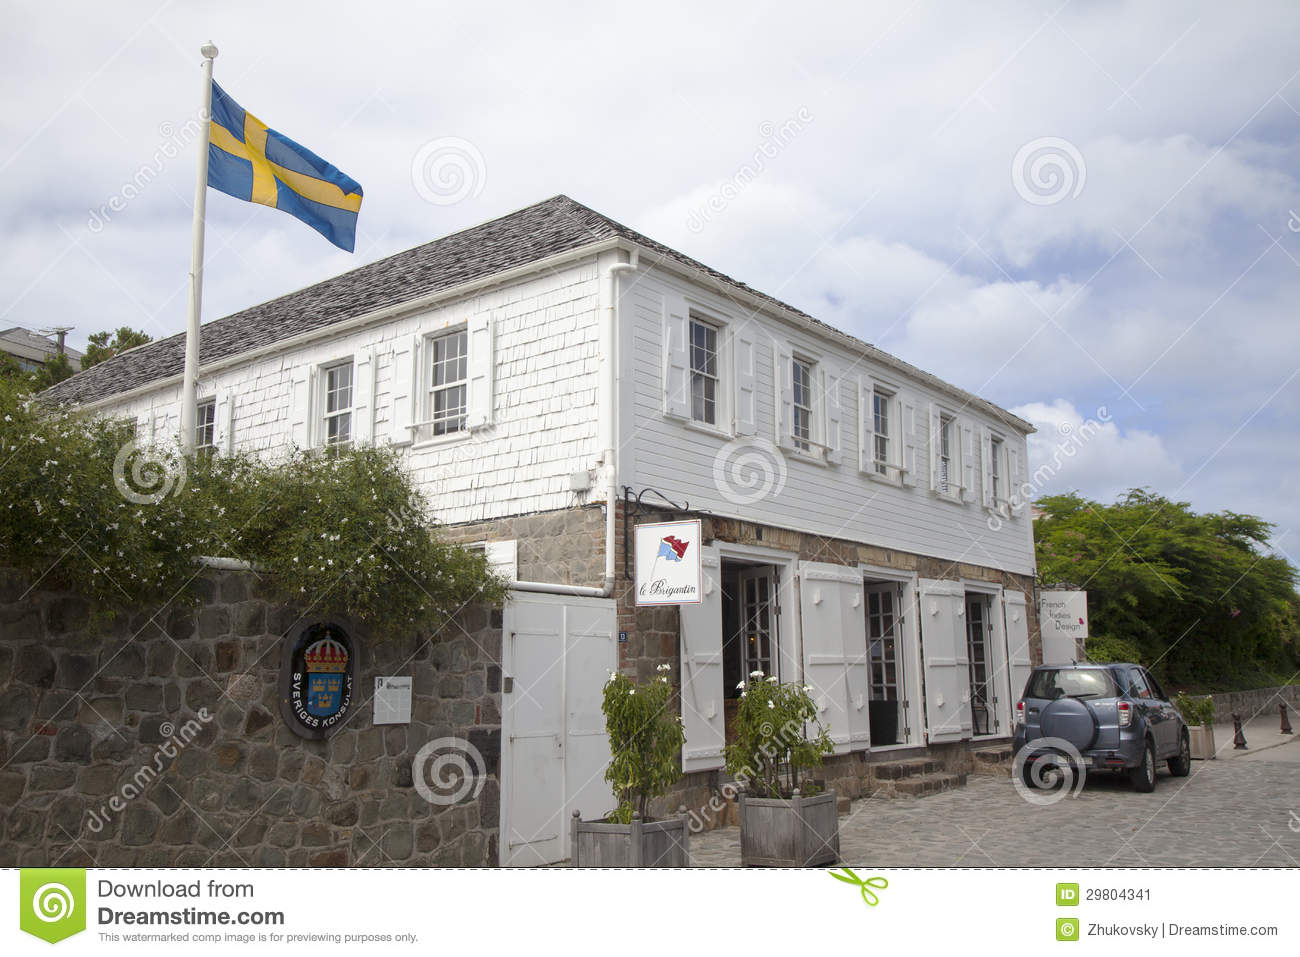 Swedish consulate in Gustavia, St Barths